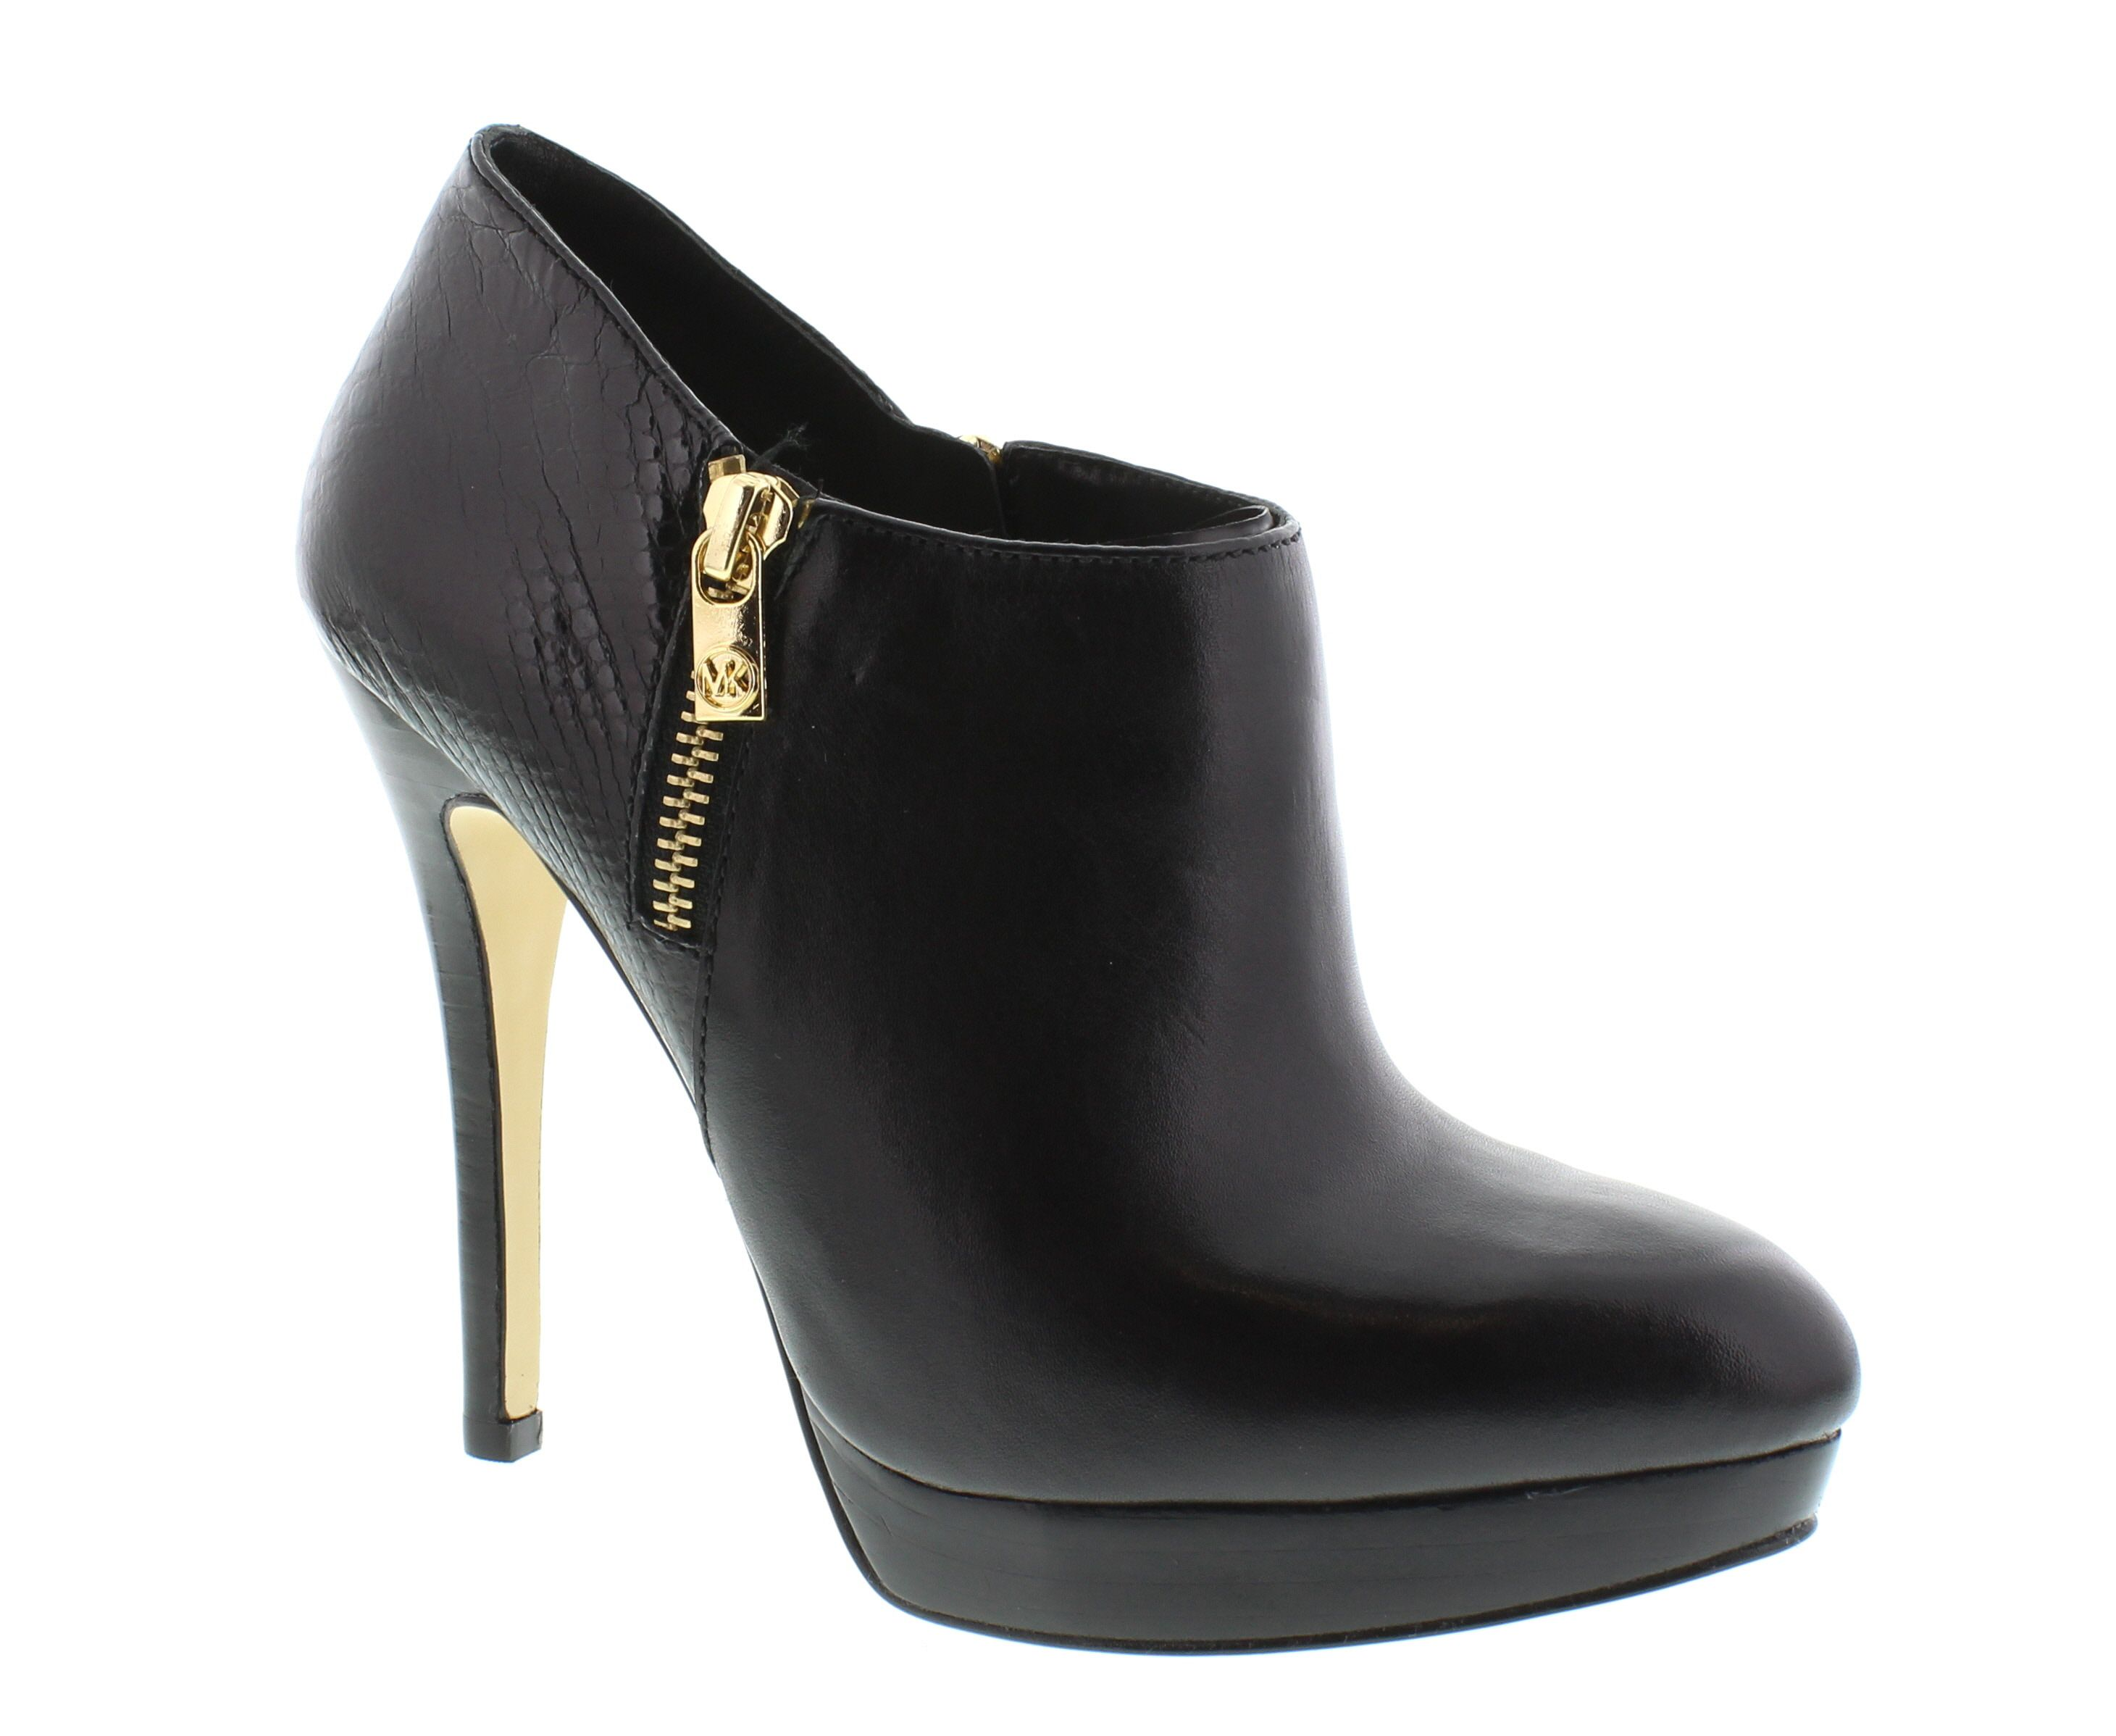 michael kors canada shoes